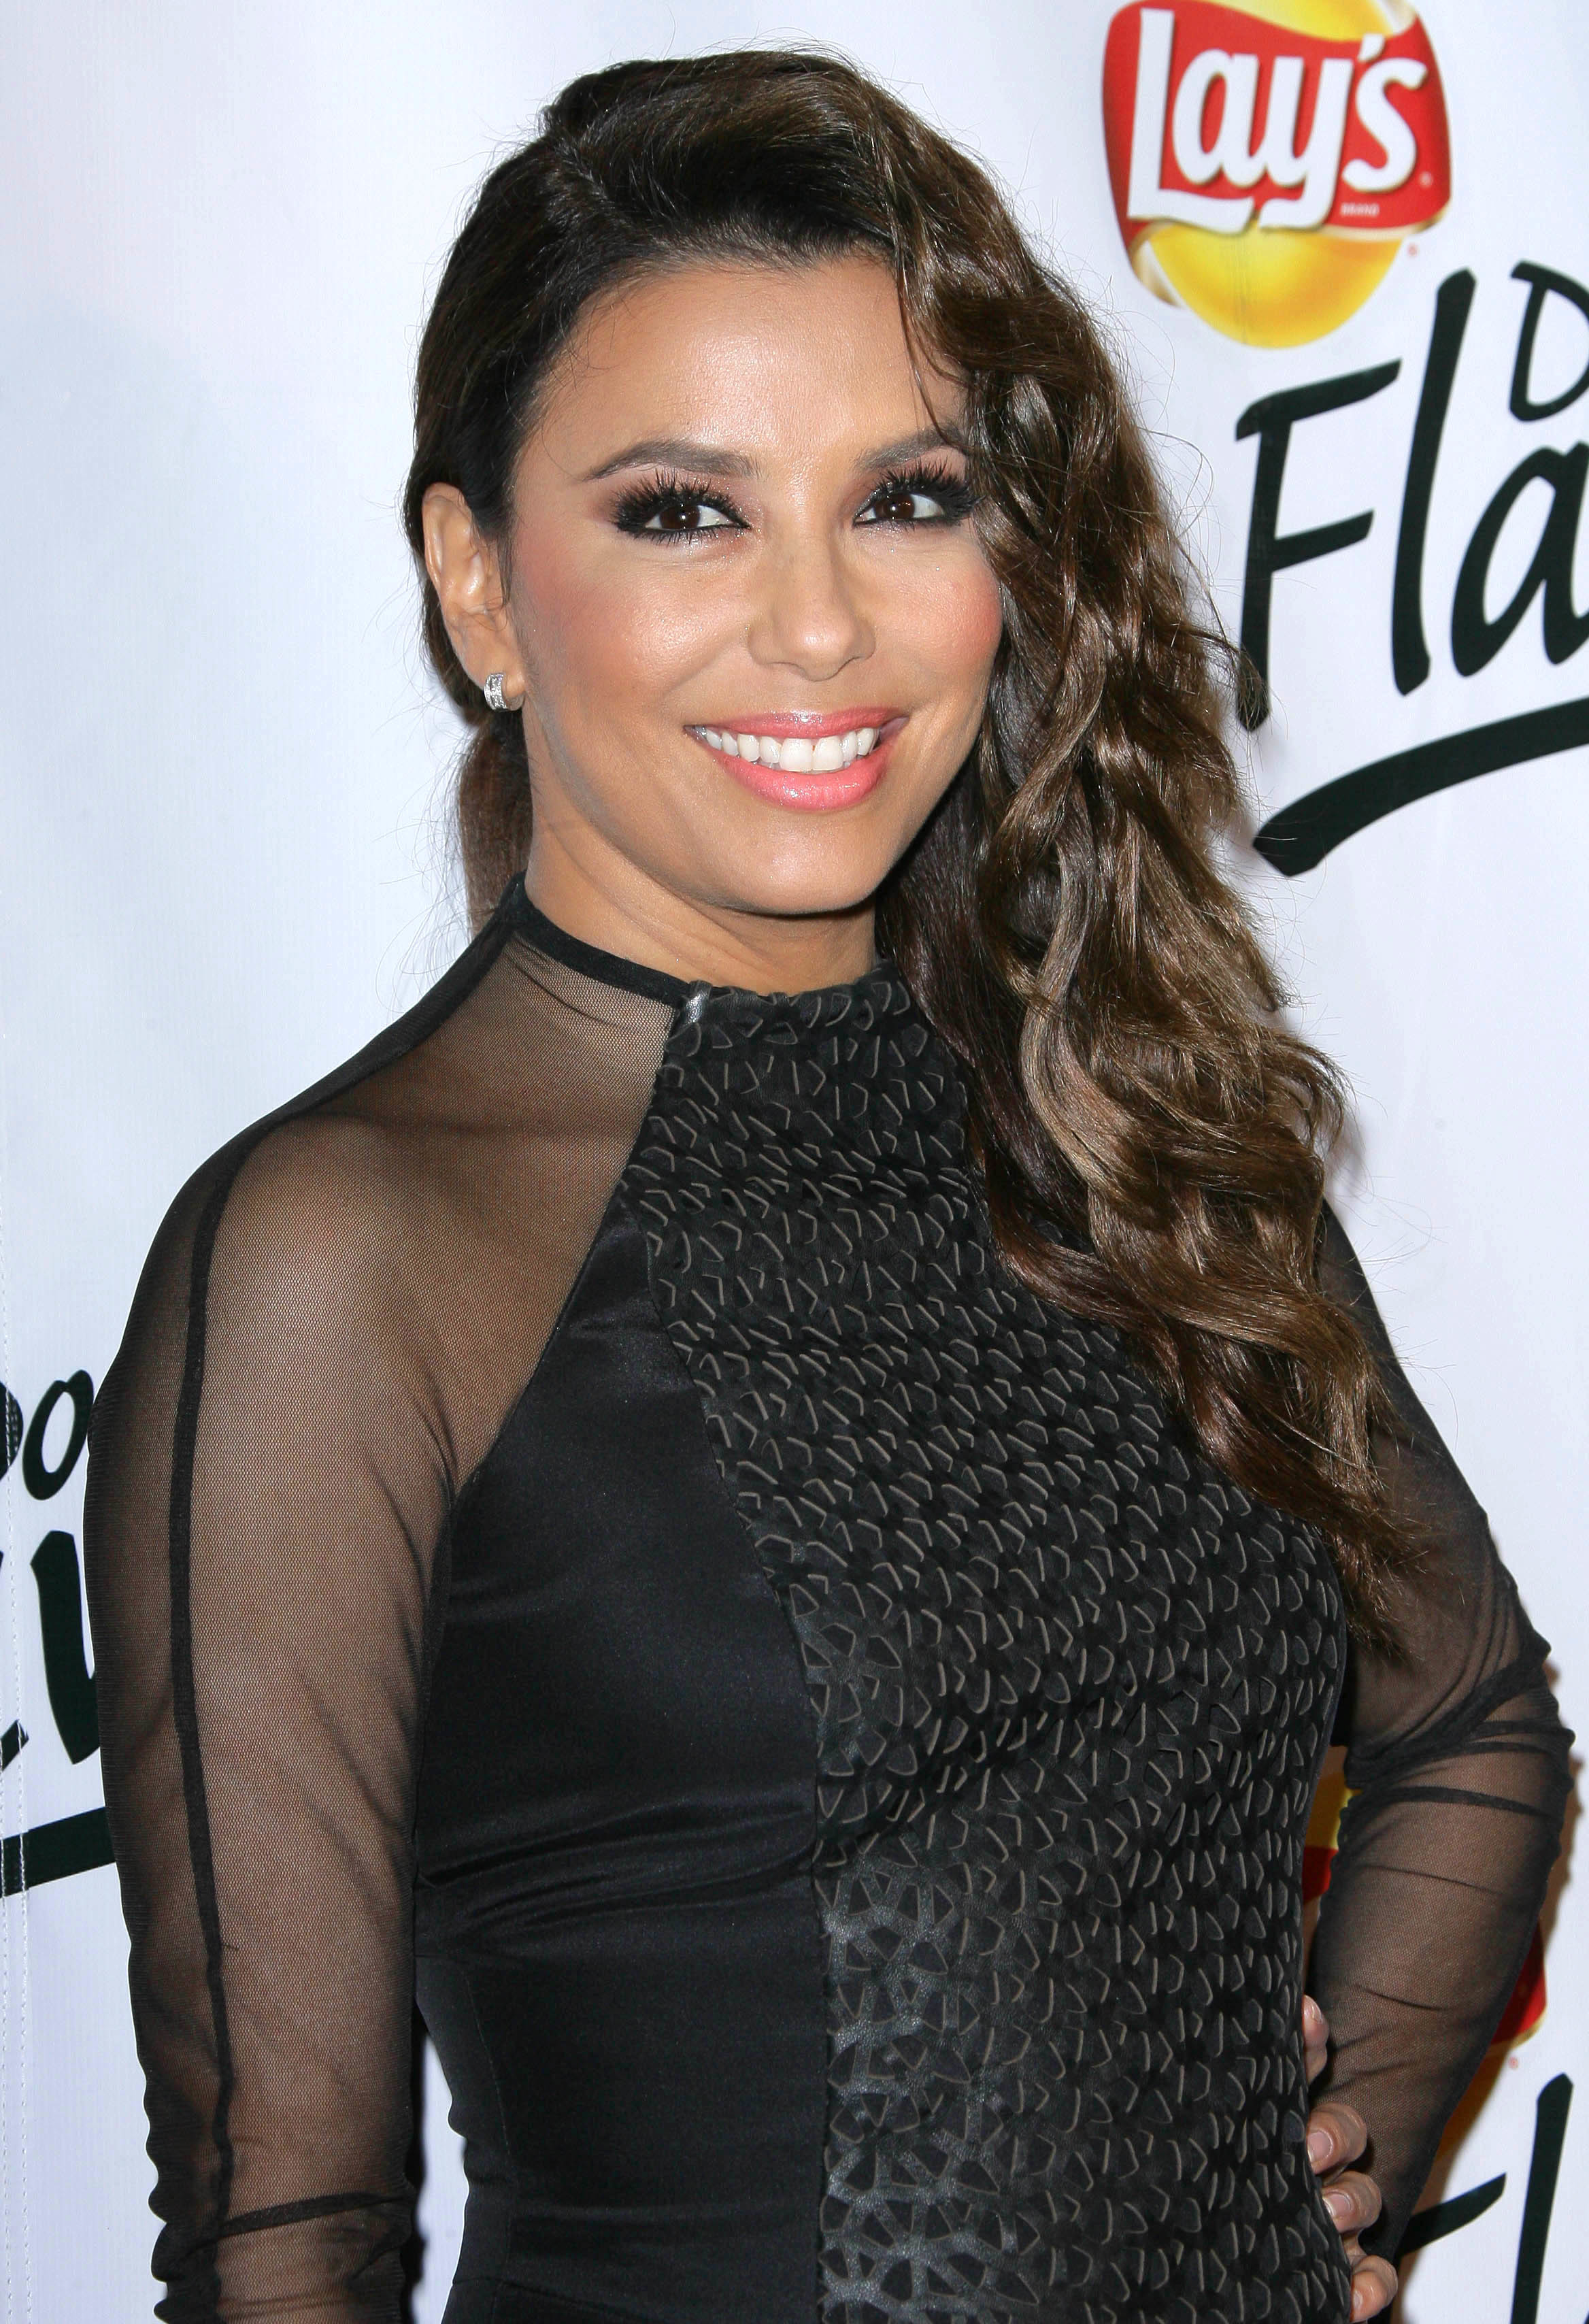 eva longoria dating contestant